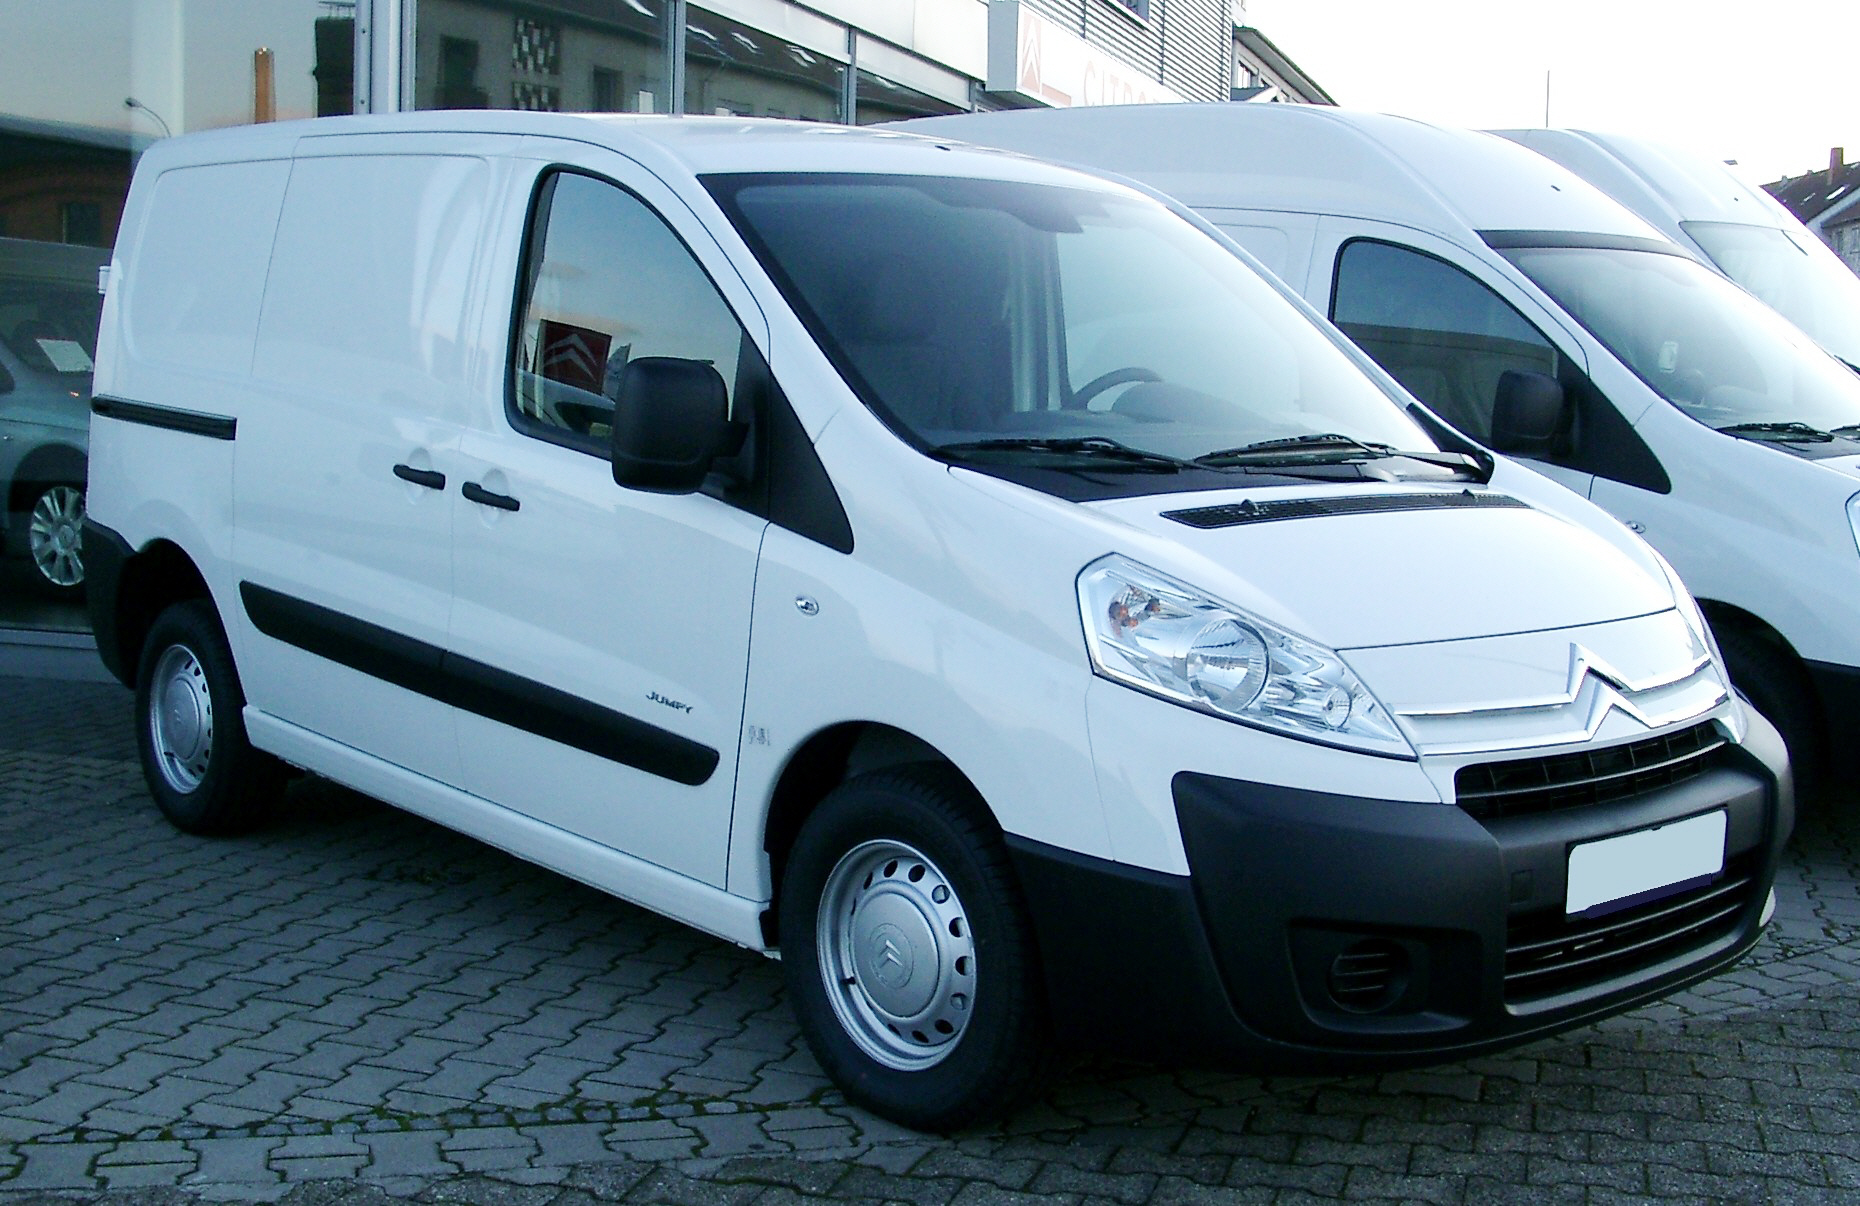 Citroen Jumpy Front Cars Gallery Wallpapers Download Free